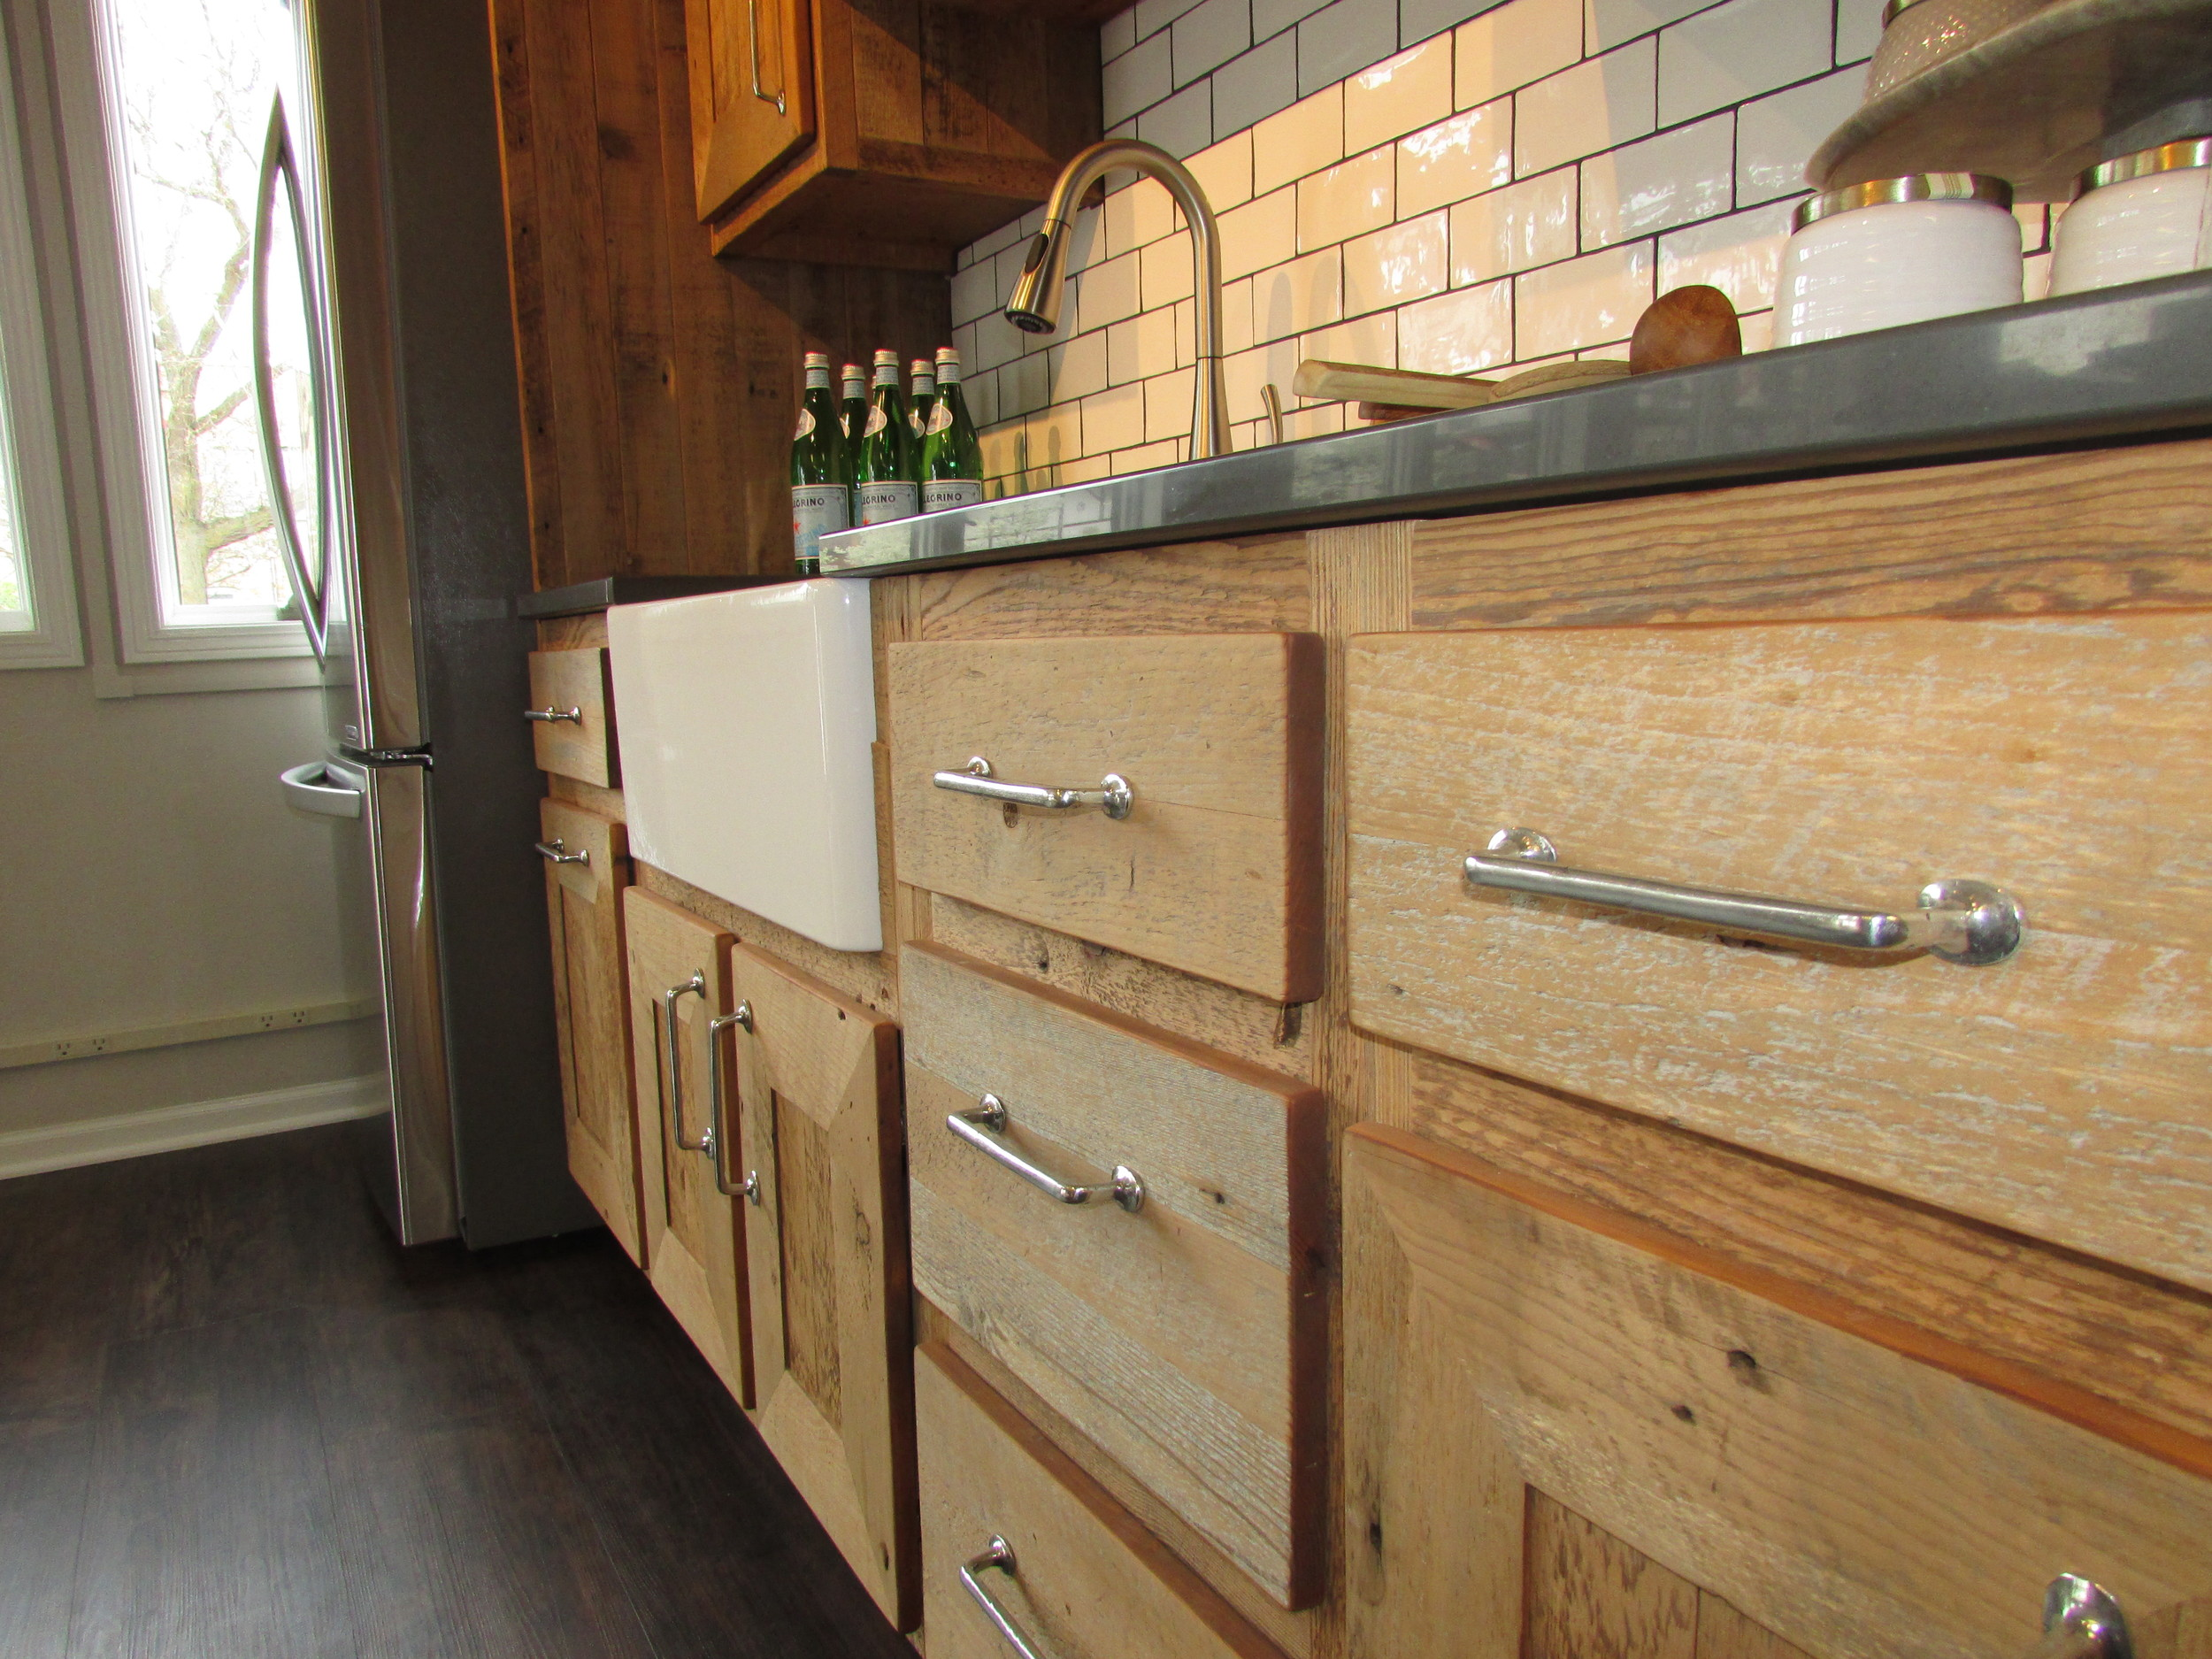 Store Cabinetry Angle.JPG